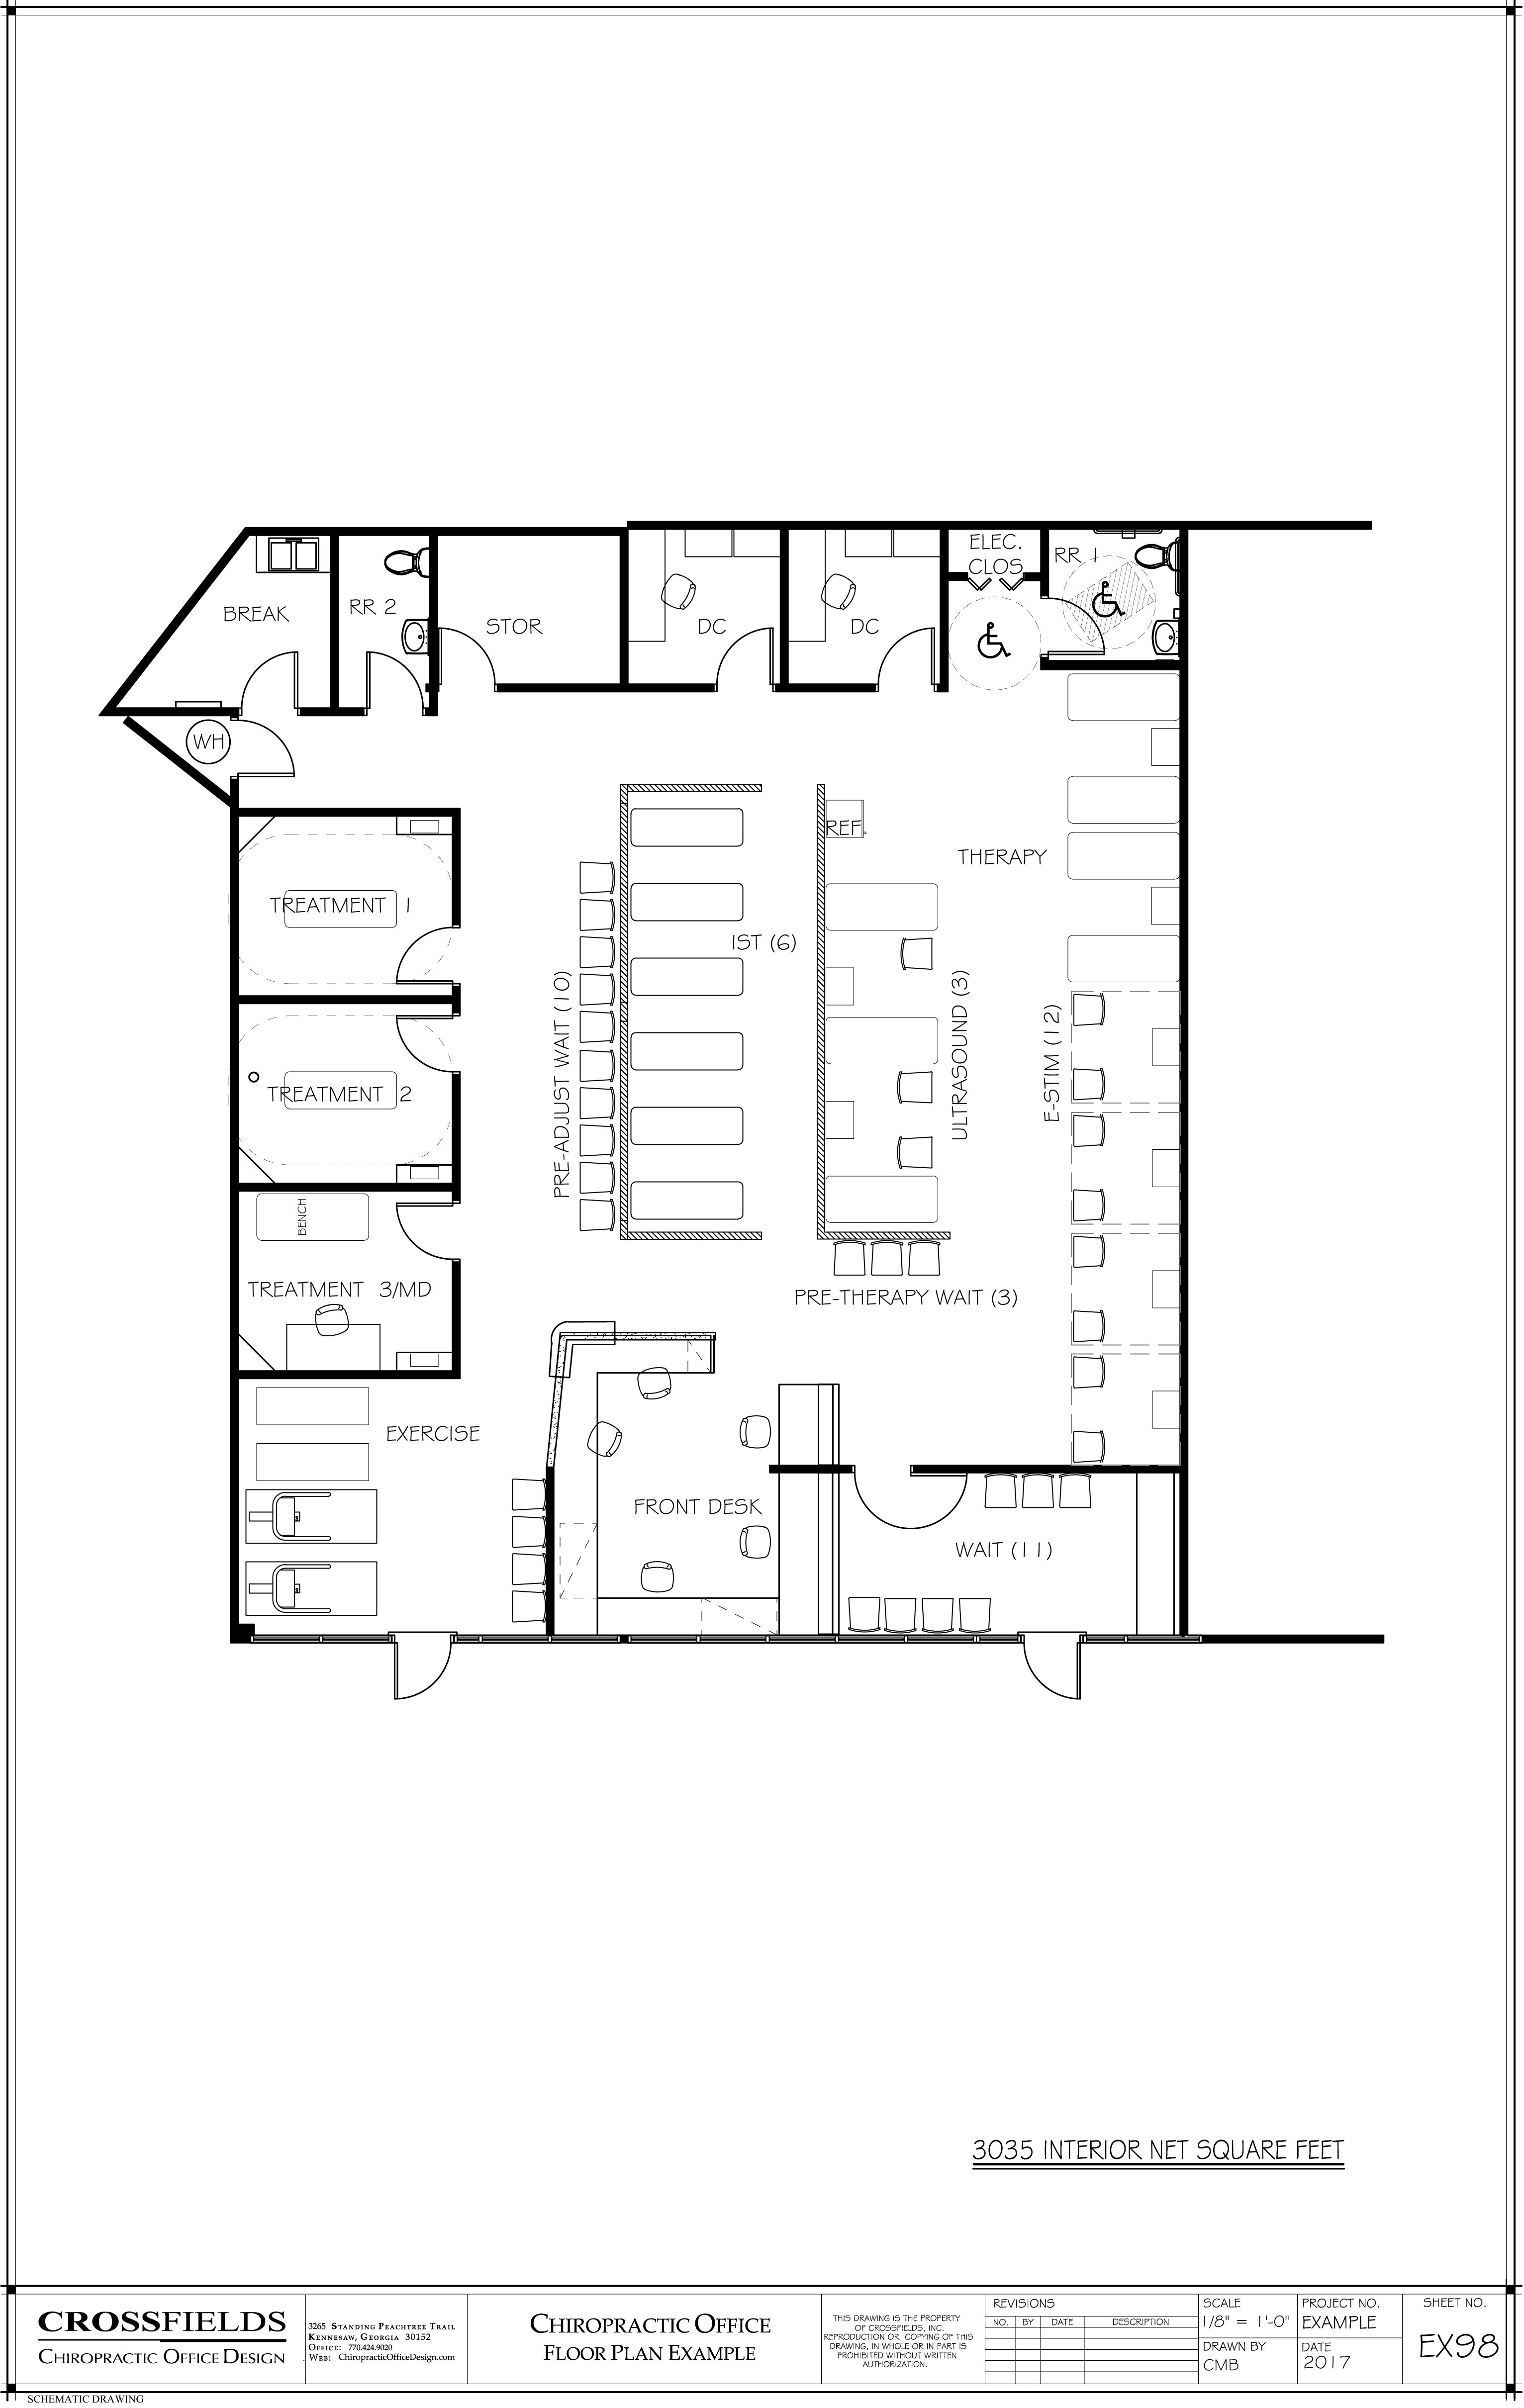 Chiropractic Office Floor Plans Versatile Medical Office Layouts Office Floor Plan Floor Plans Chiropractic Office